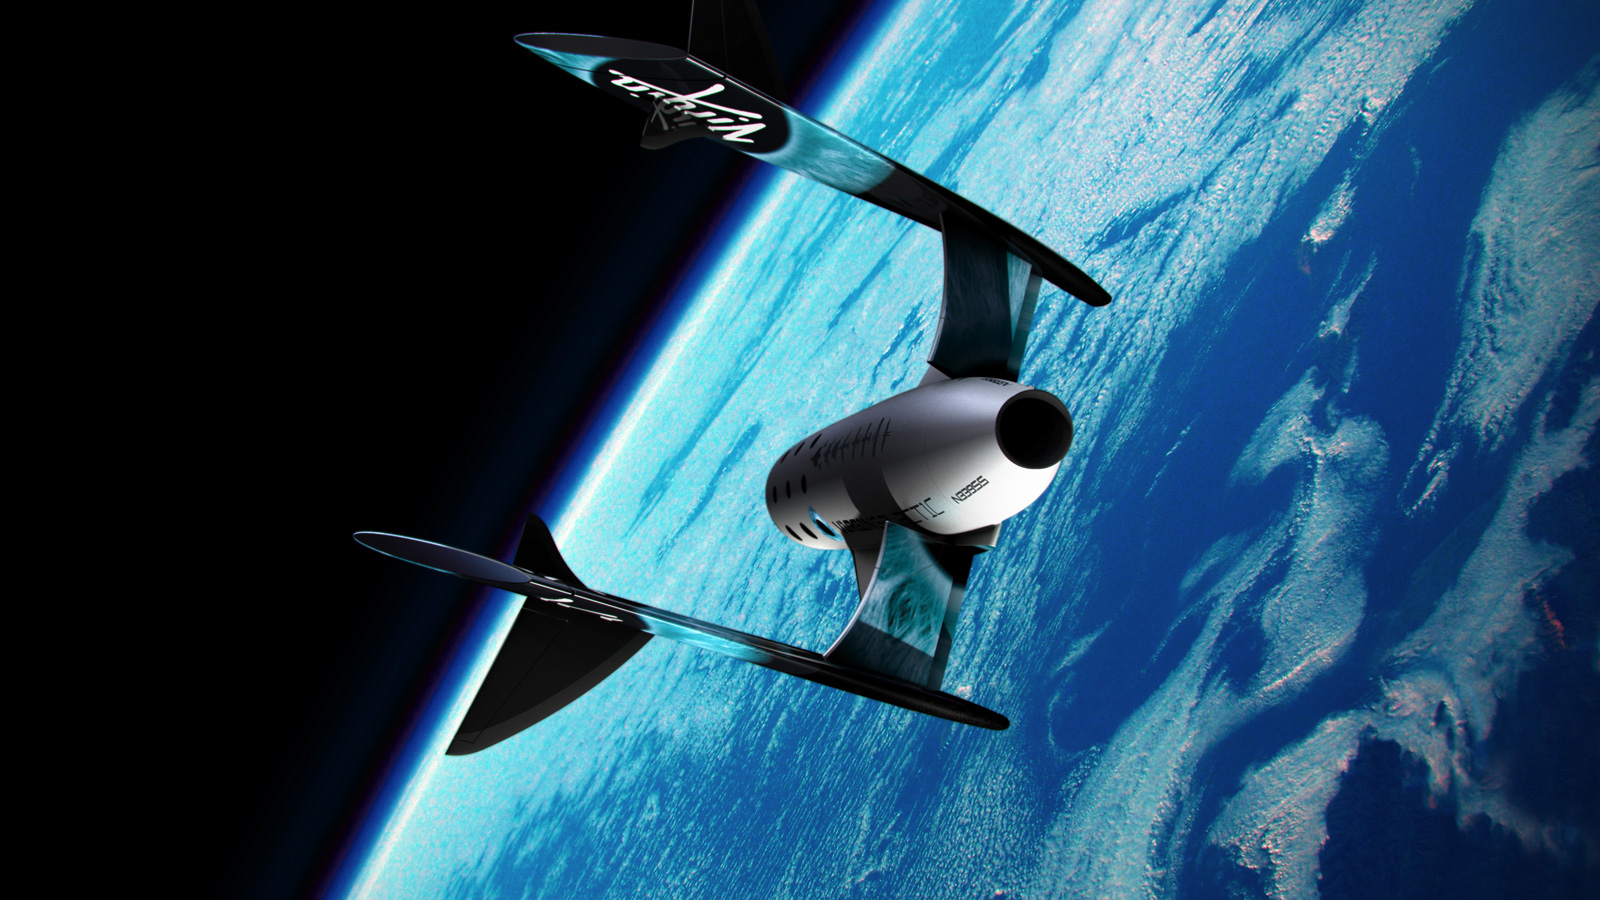 A Peek at Virgin Galactic's Spacecraft